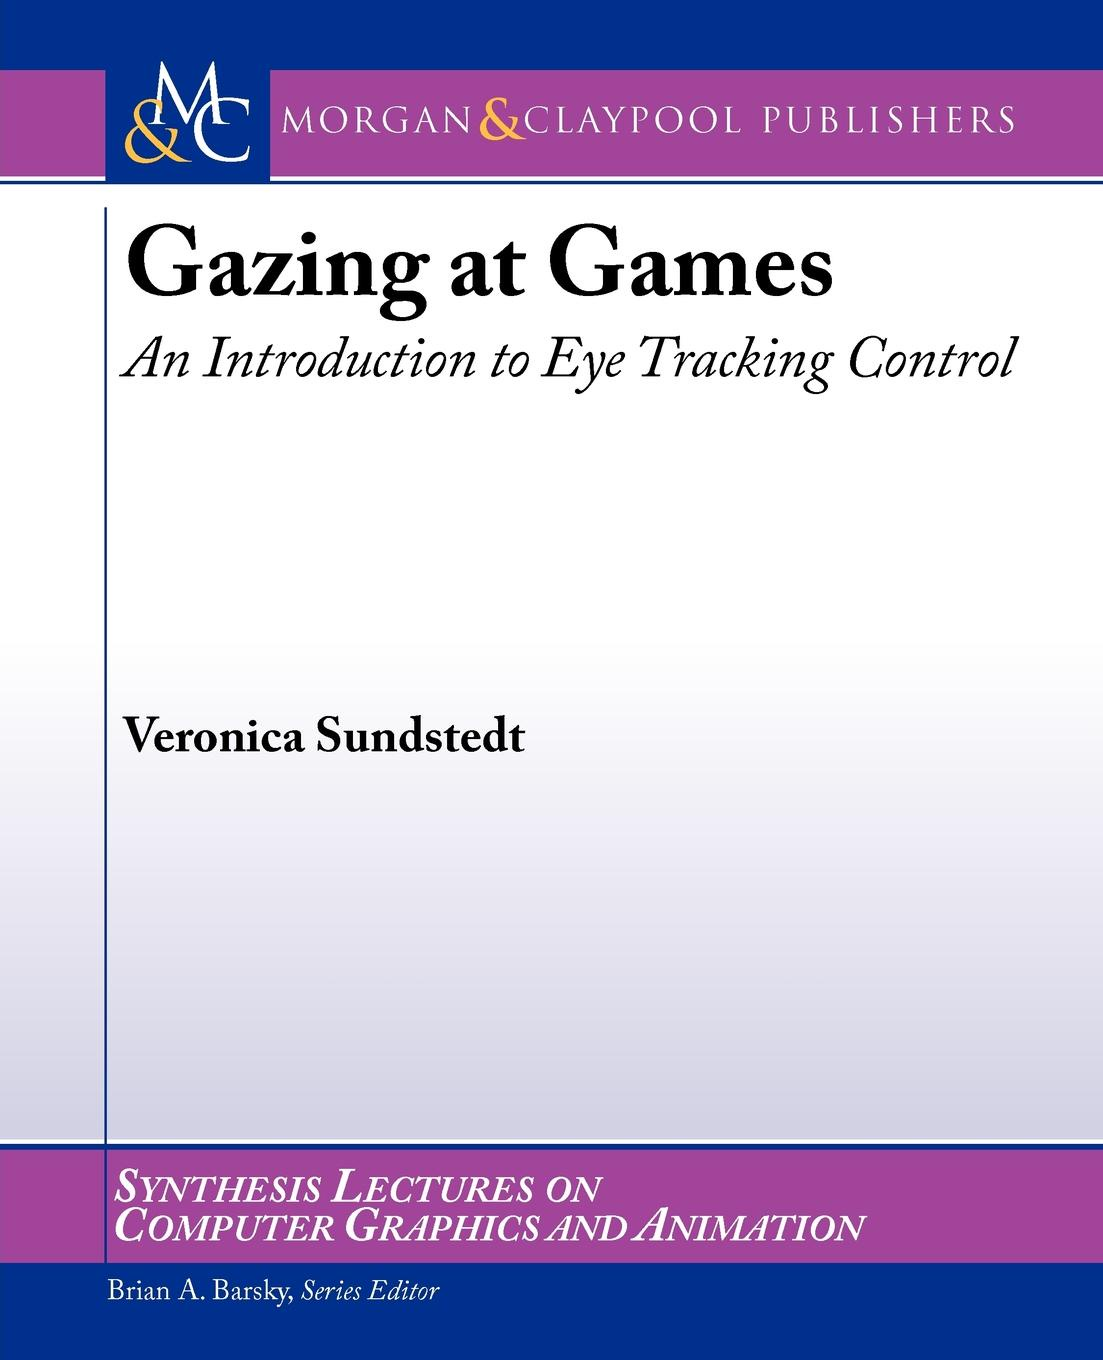 Veronica Sundstedt. Gazing at Games. An Introduction to Eye Tracking Control